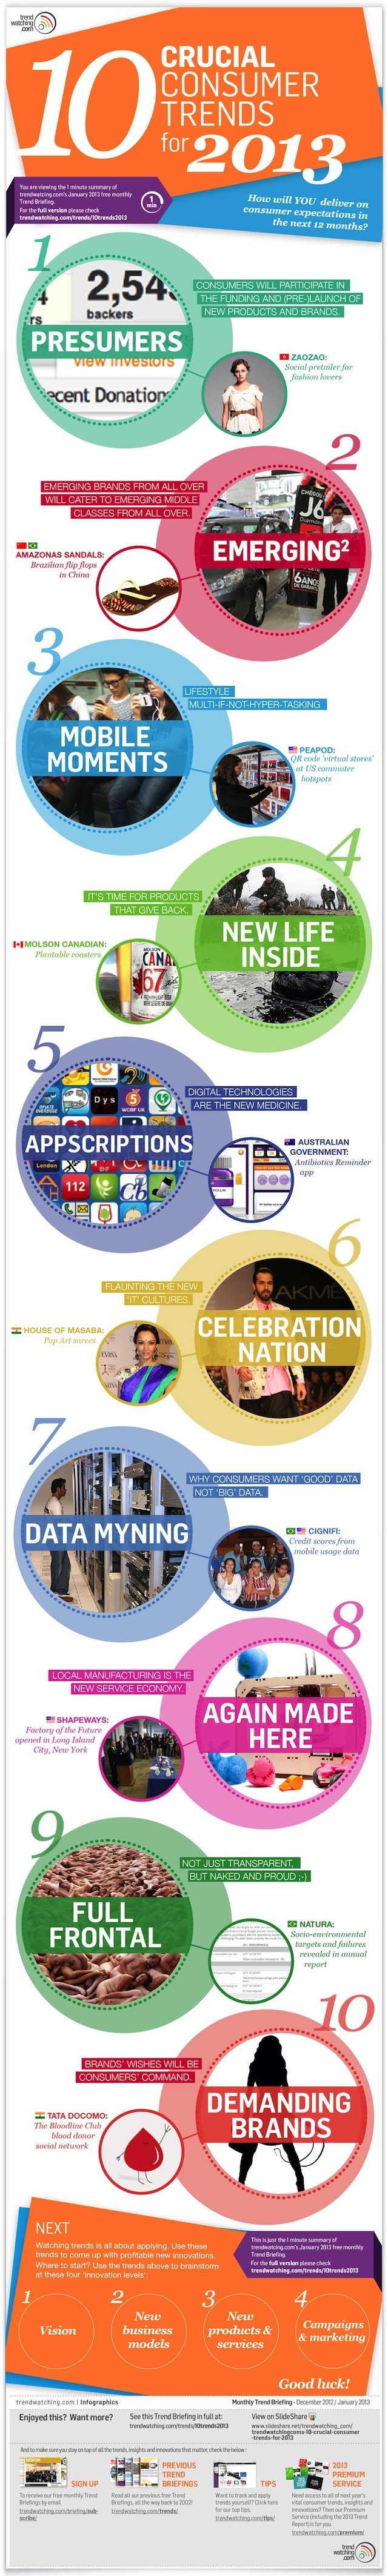 startup trends 2013